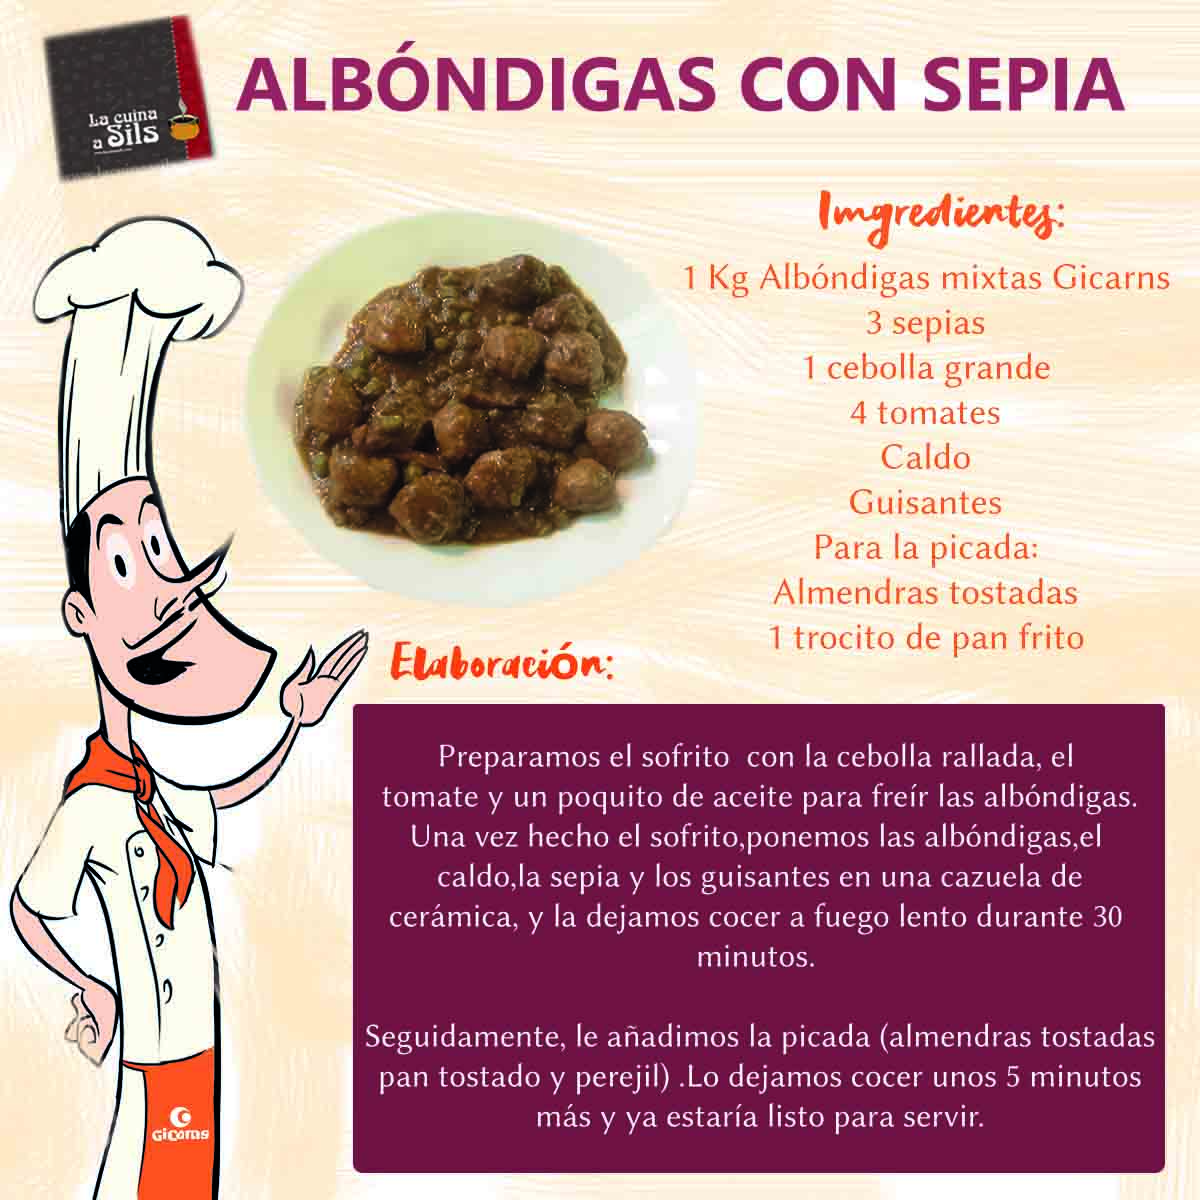 Recipe of meatballs with cuttlefish with  La Cuina a Sils